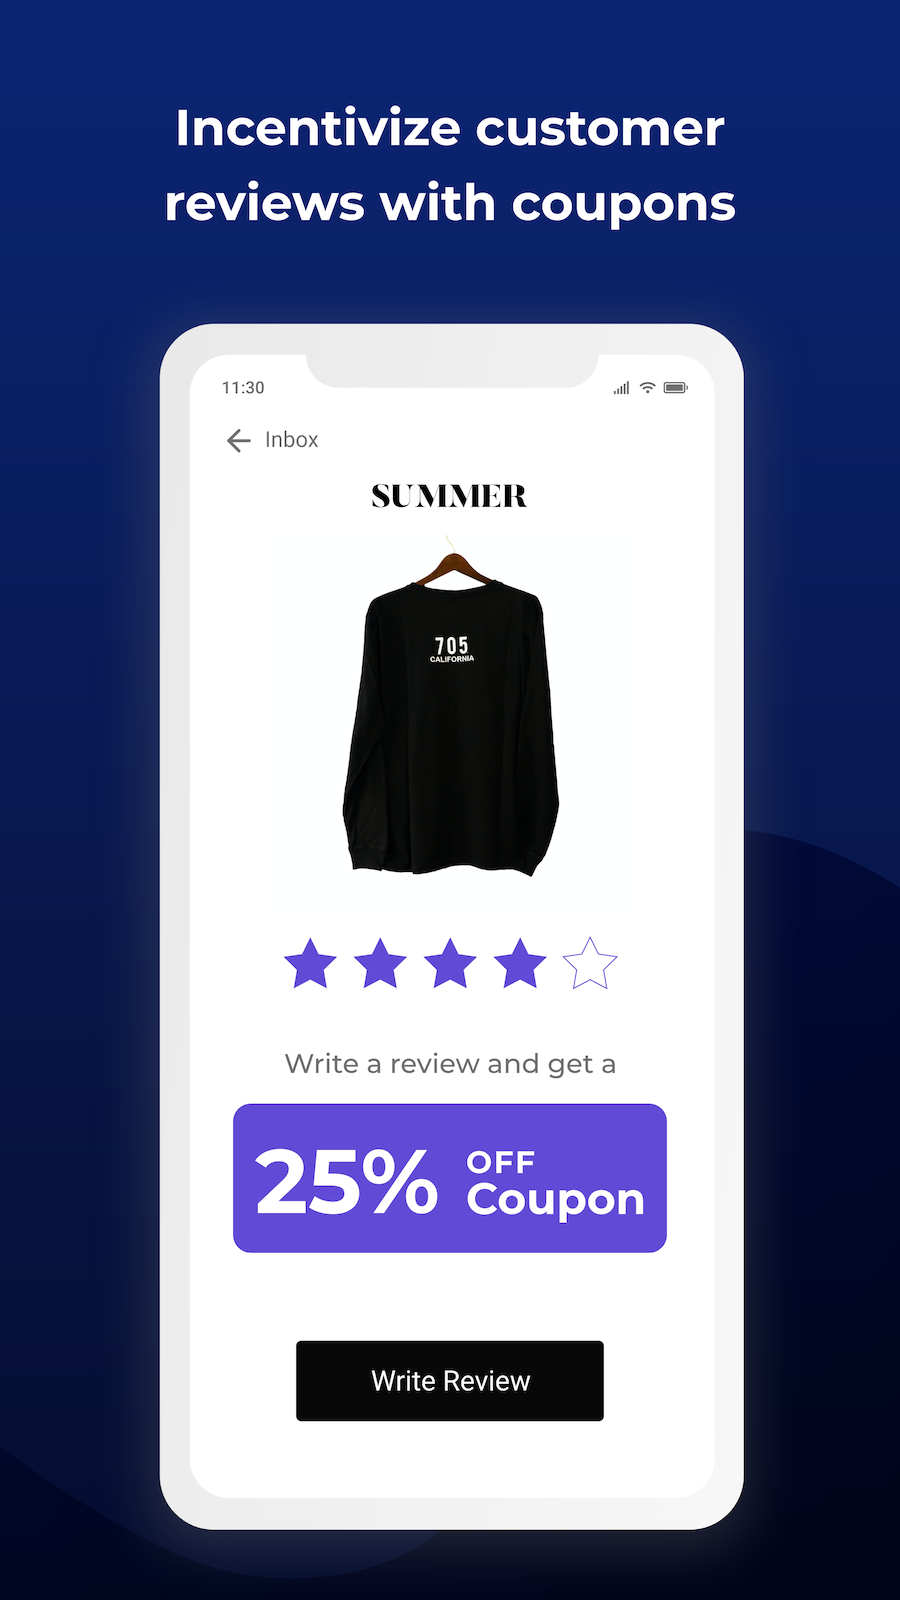 coupons and discounts review requests via email and SMS